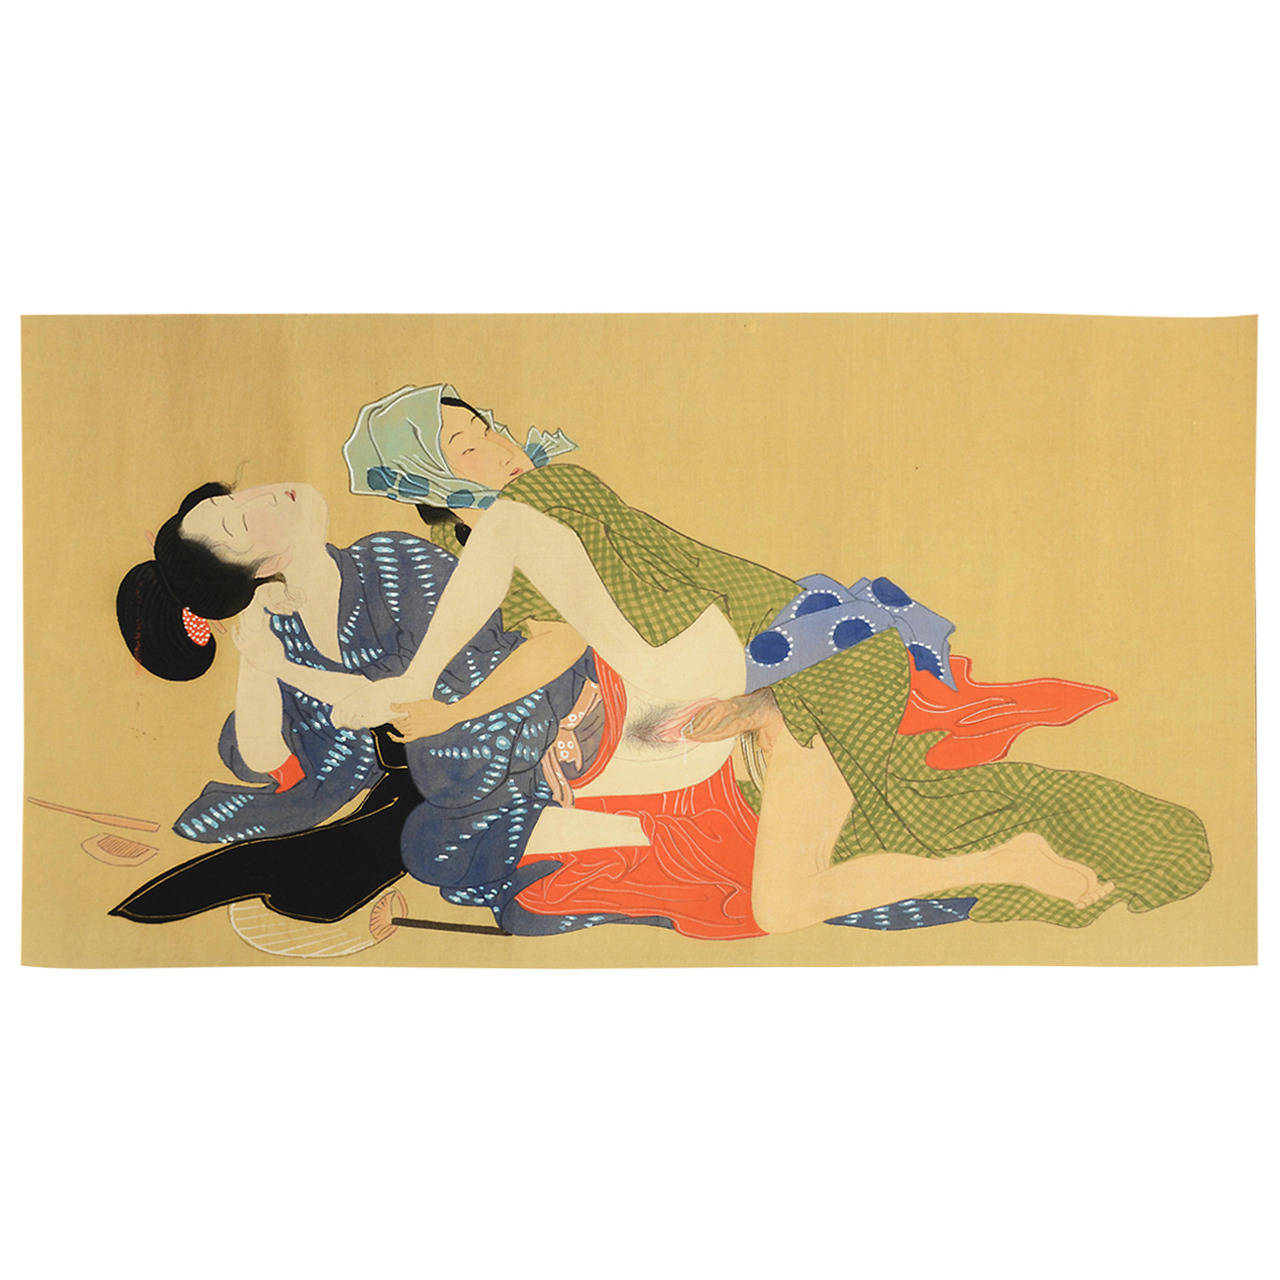 1280x1280 Vintage Japanese Erotic Shunga Scroll, Early 20th Century